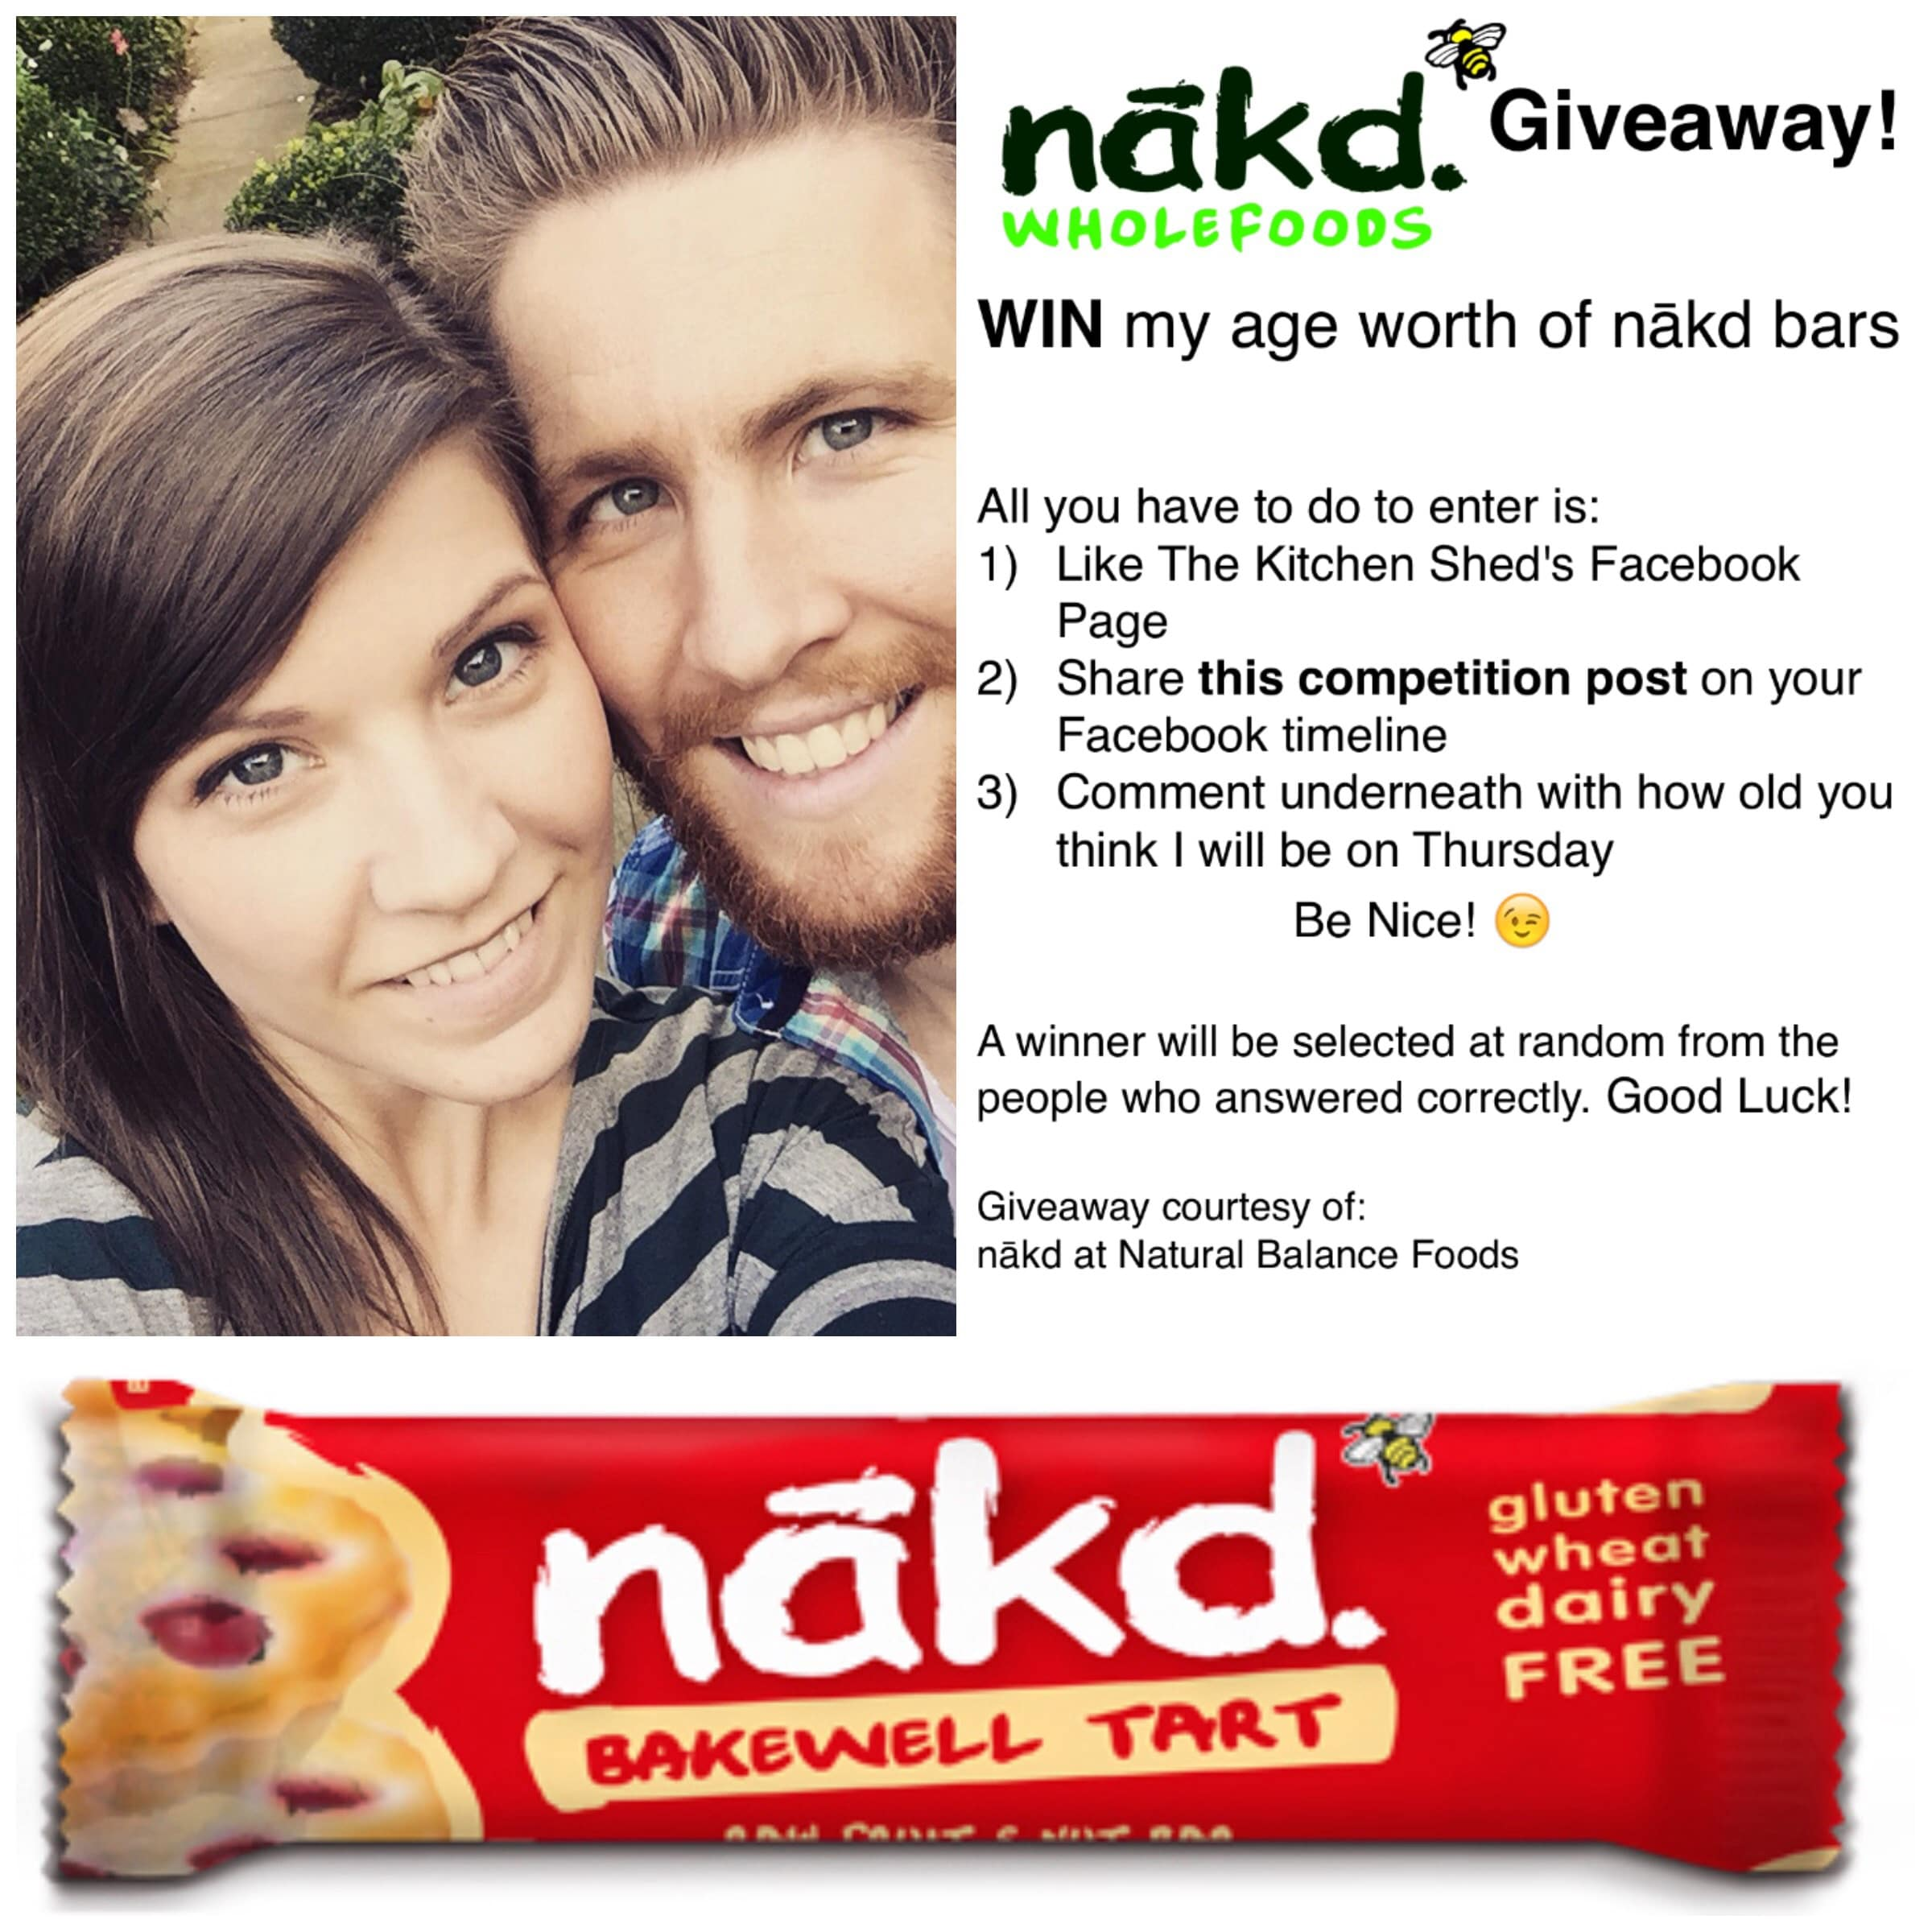 Nakd Bar Giveaway! www.thekitchenshed.co.uk